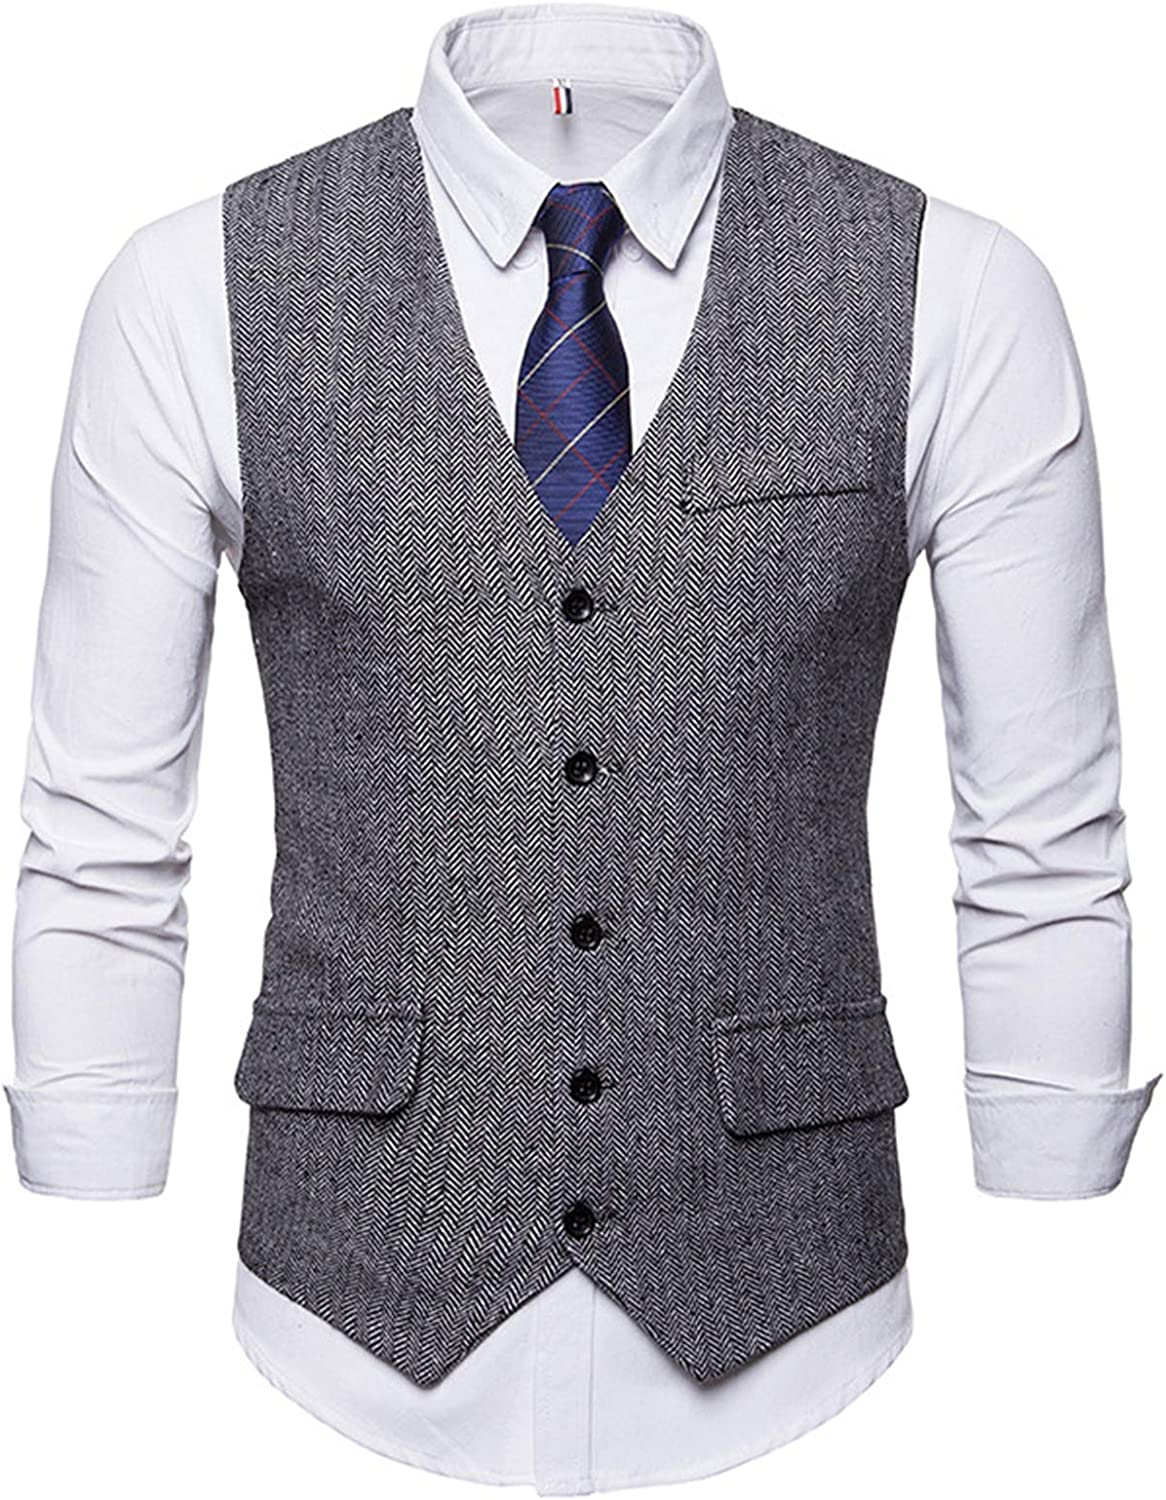 CNBPLS Mens Formal Business Vest for Suit,Men's Herringbone Single-Breasted Vests,Solid Color Sleeveless Slim Fit Waistcoat,Black and White,S